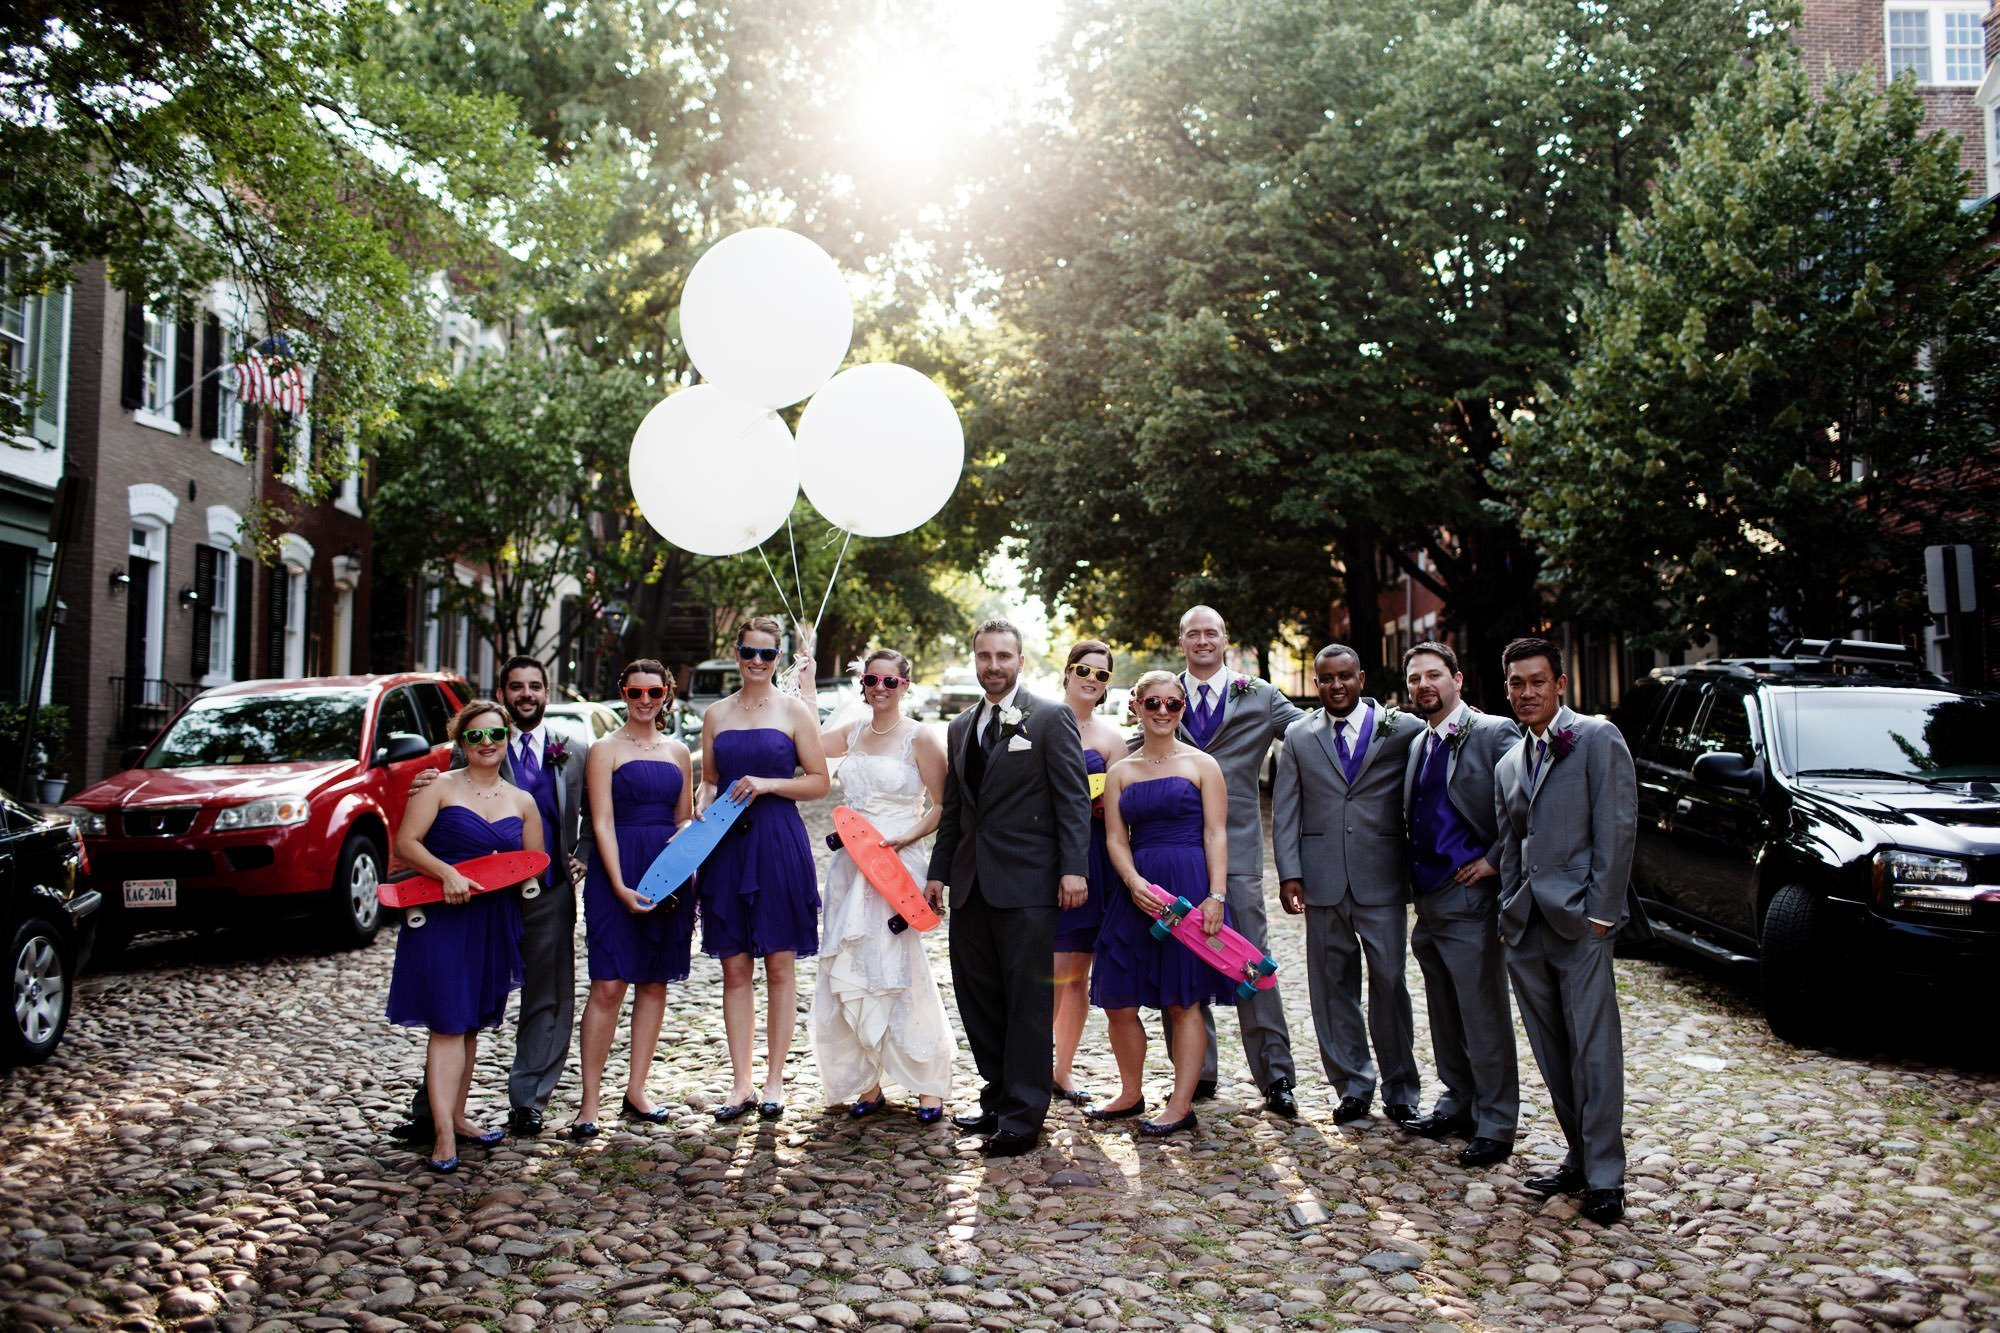 The wedding party poses for a portrait in Olde Town Alexandria before the Topedo Factory wedding.